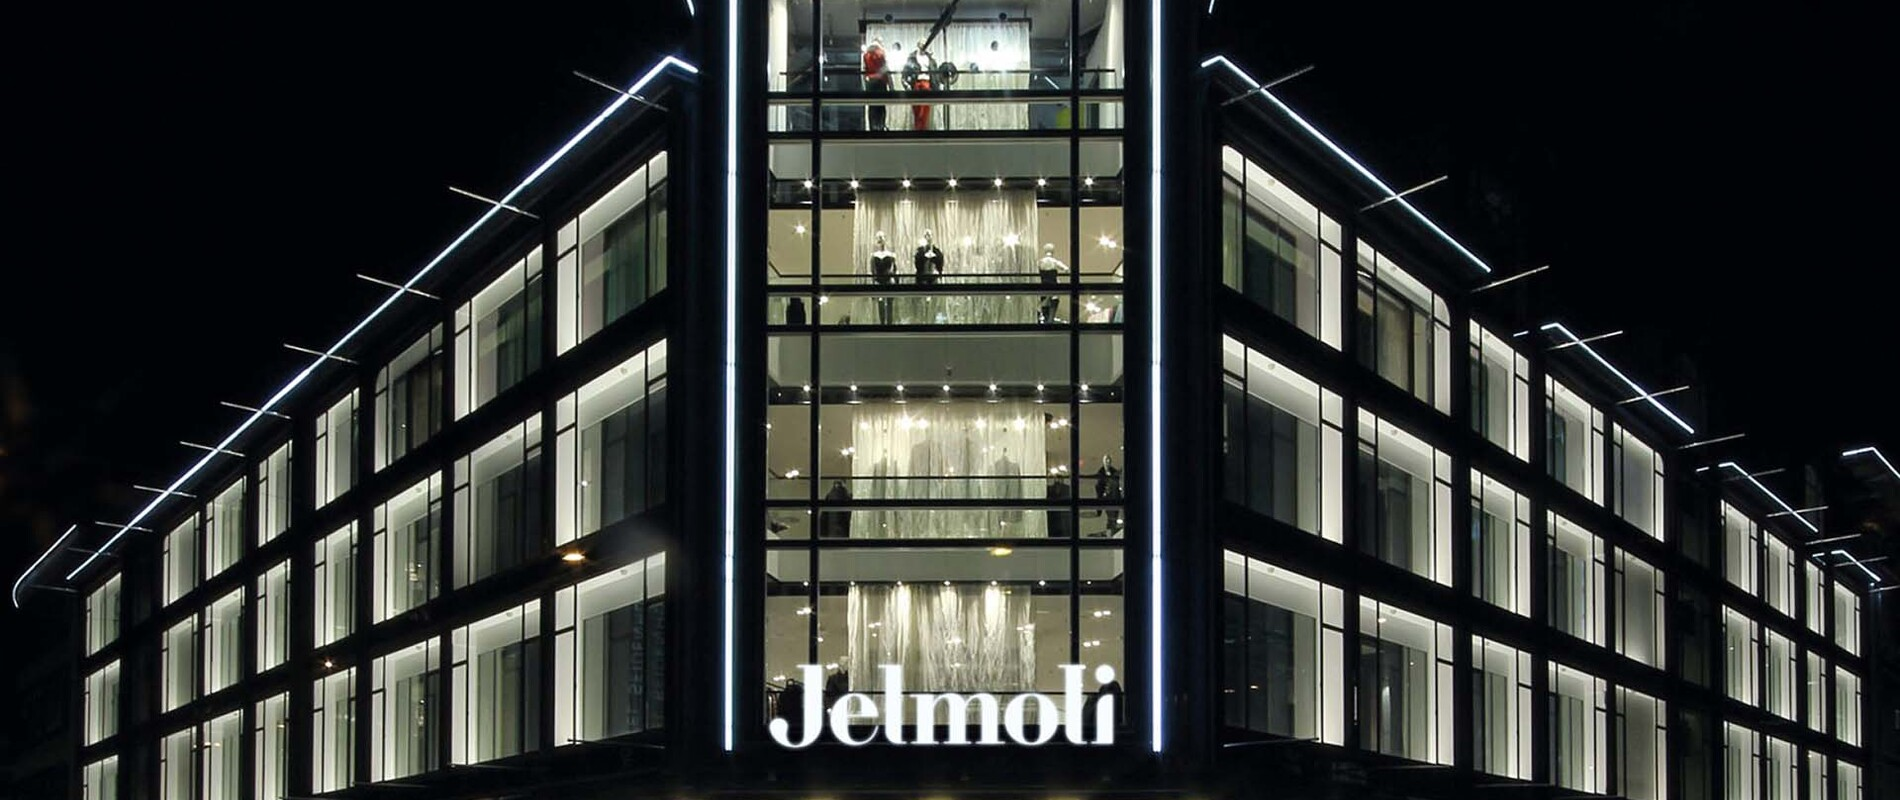 new structuring of the sales area - modern development concept - department store - Jelmoli Zurich - building facade enlighted by night